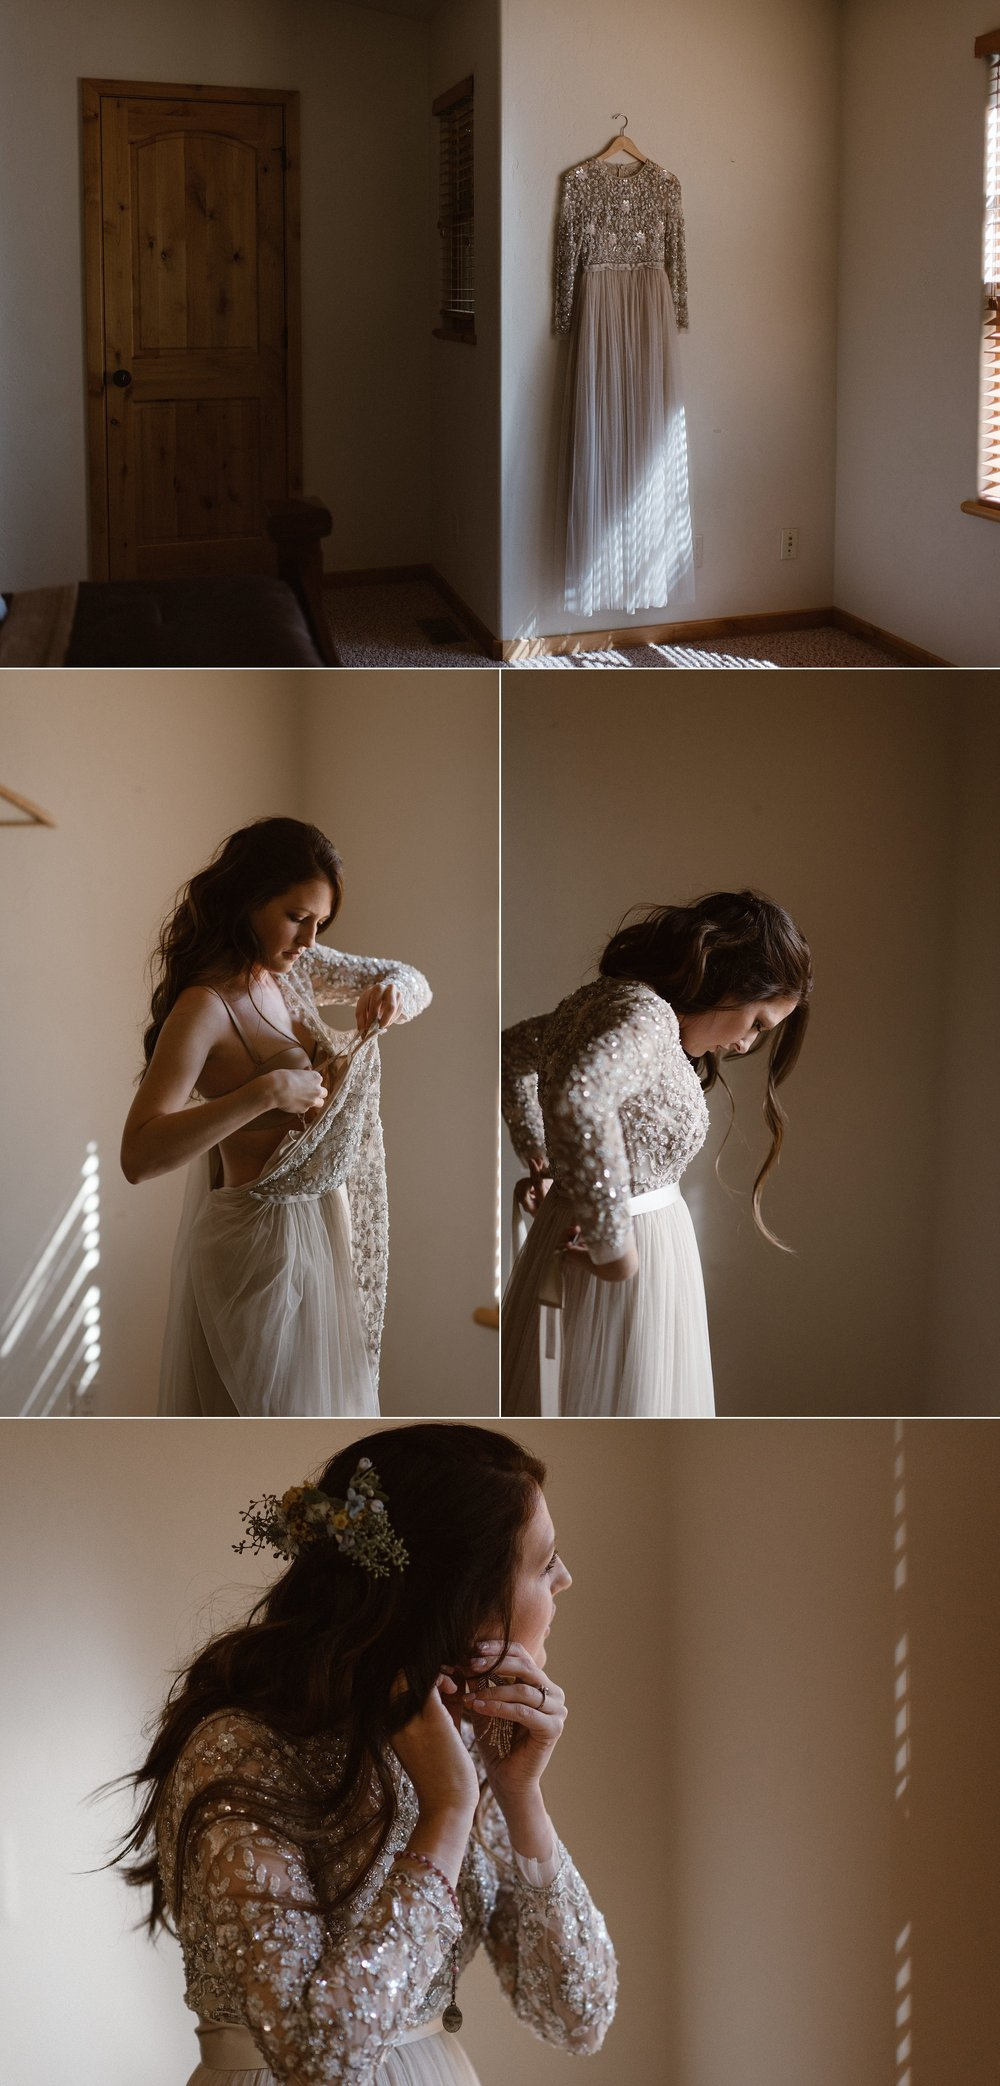 Although they through the traditional wedding to the wind, Jen kept a few details in tact. She go ready with the morning light peeking into the blinds, making the sparkles on her jeweled wedding dress light up the room. Photos of this epically romantic elopement in Ouray, Colorado's Yankee Boy Basin by intimate wedding photographer Maddie Mae.